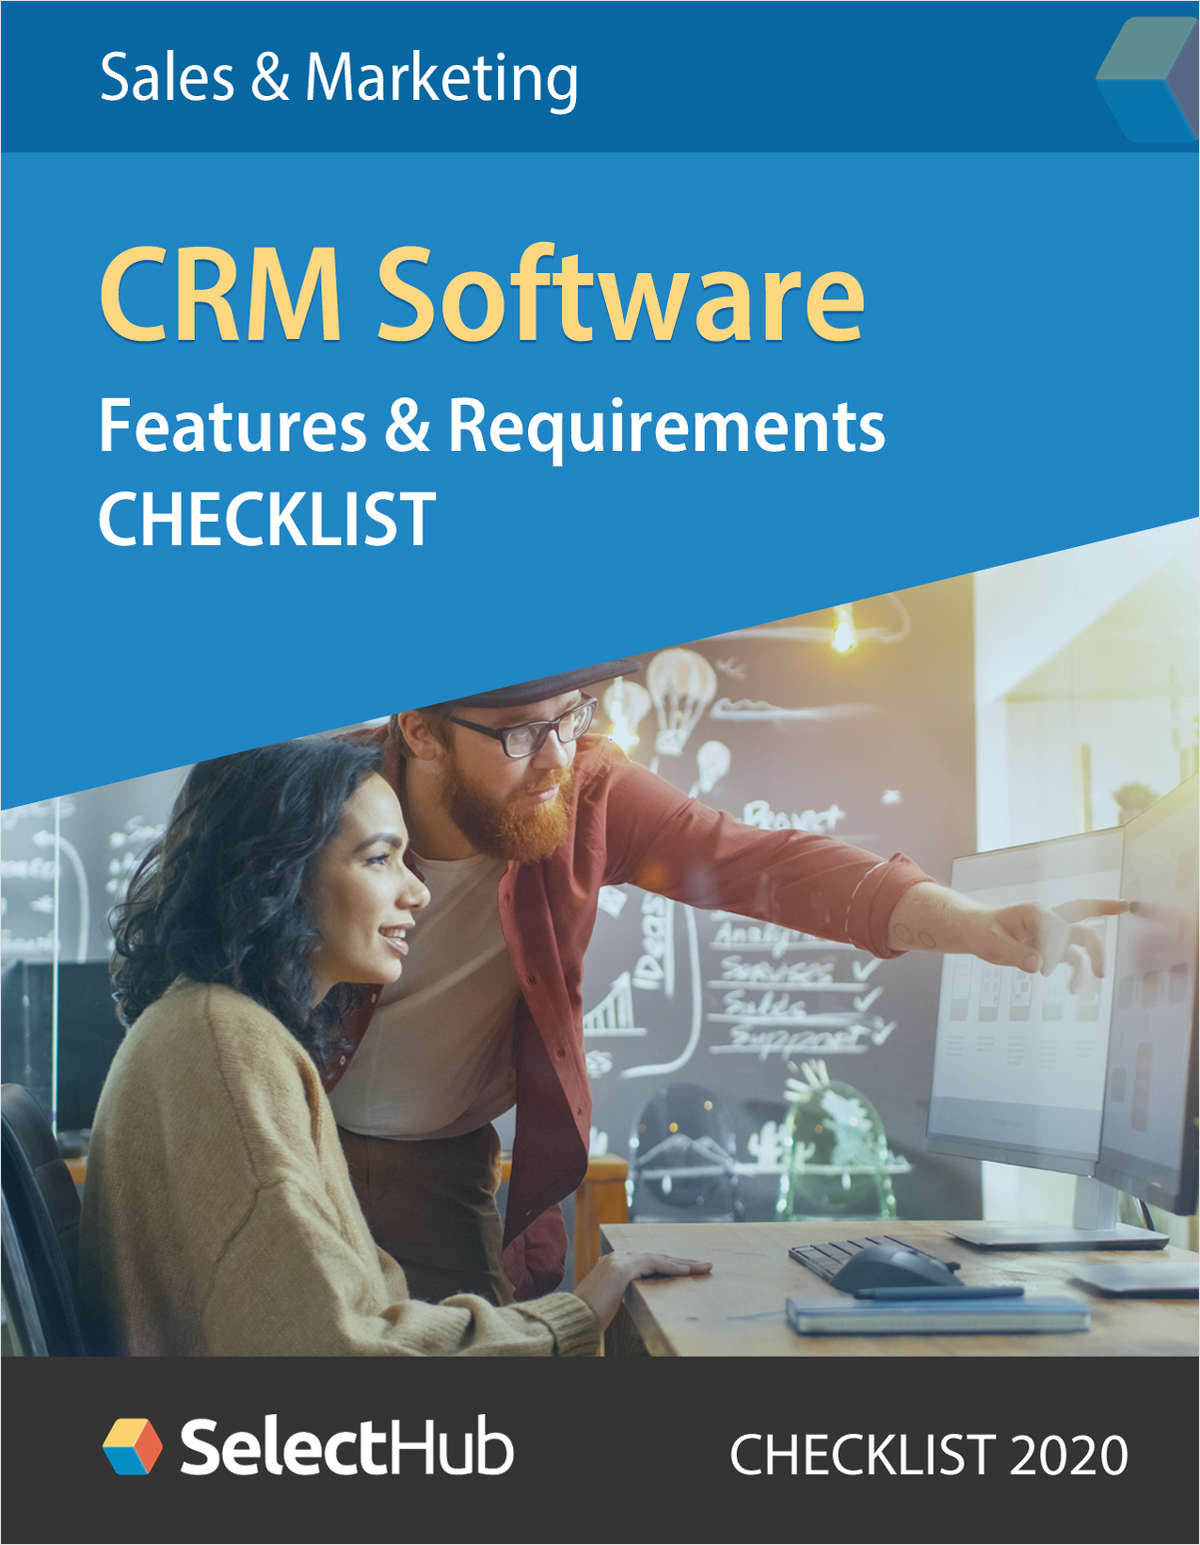 Top CRM Software Features & Requirements Checklist